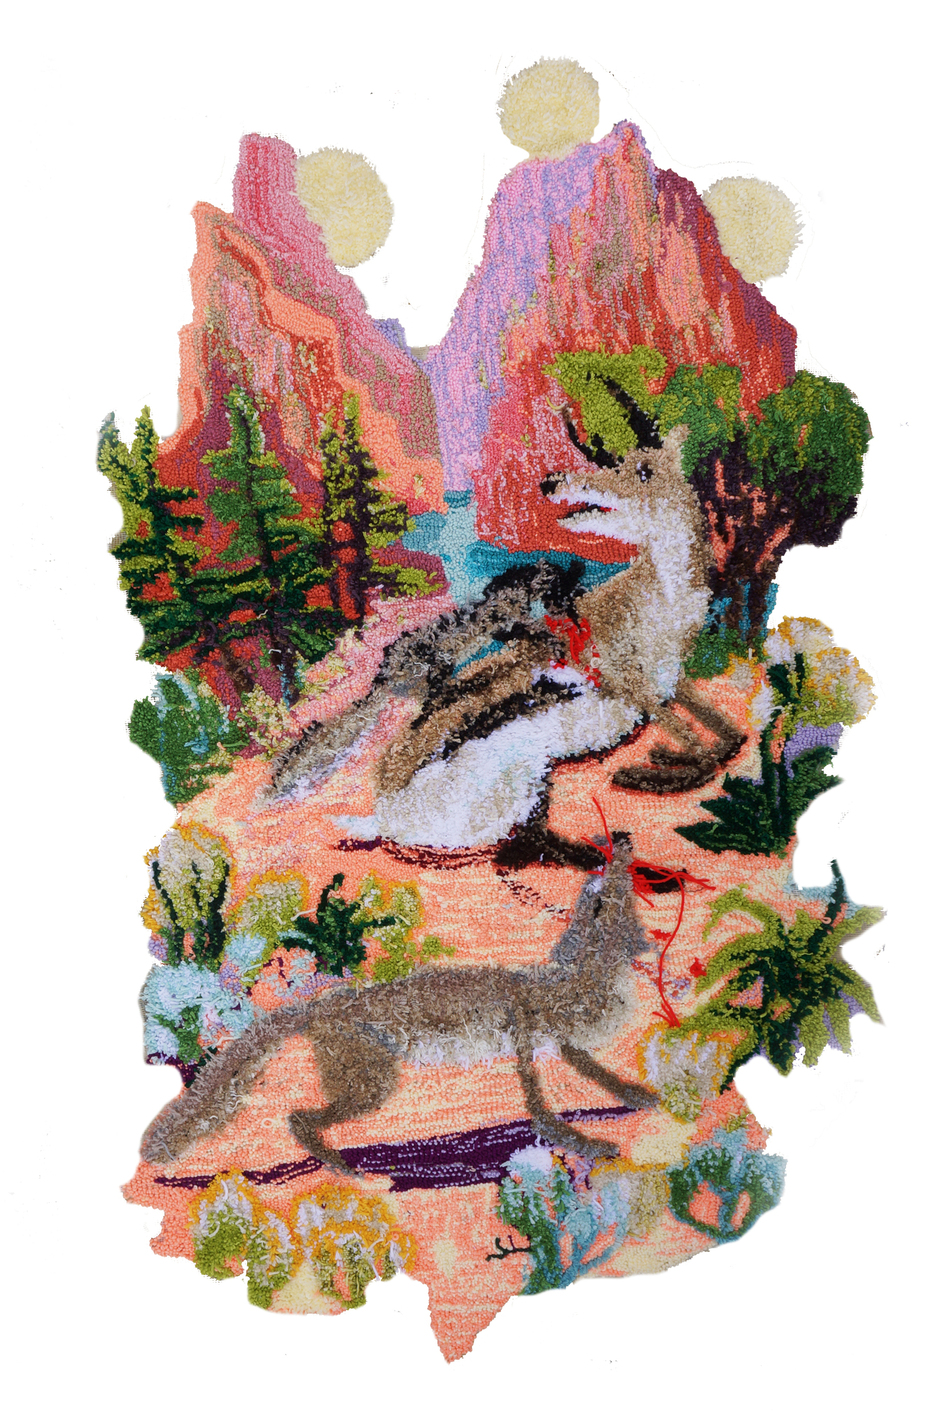 Johnny Defeo zion national park tapestry art rug